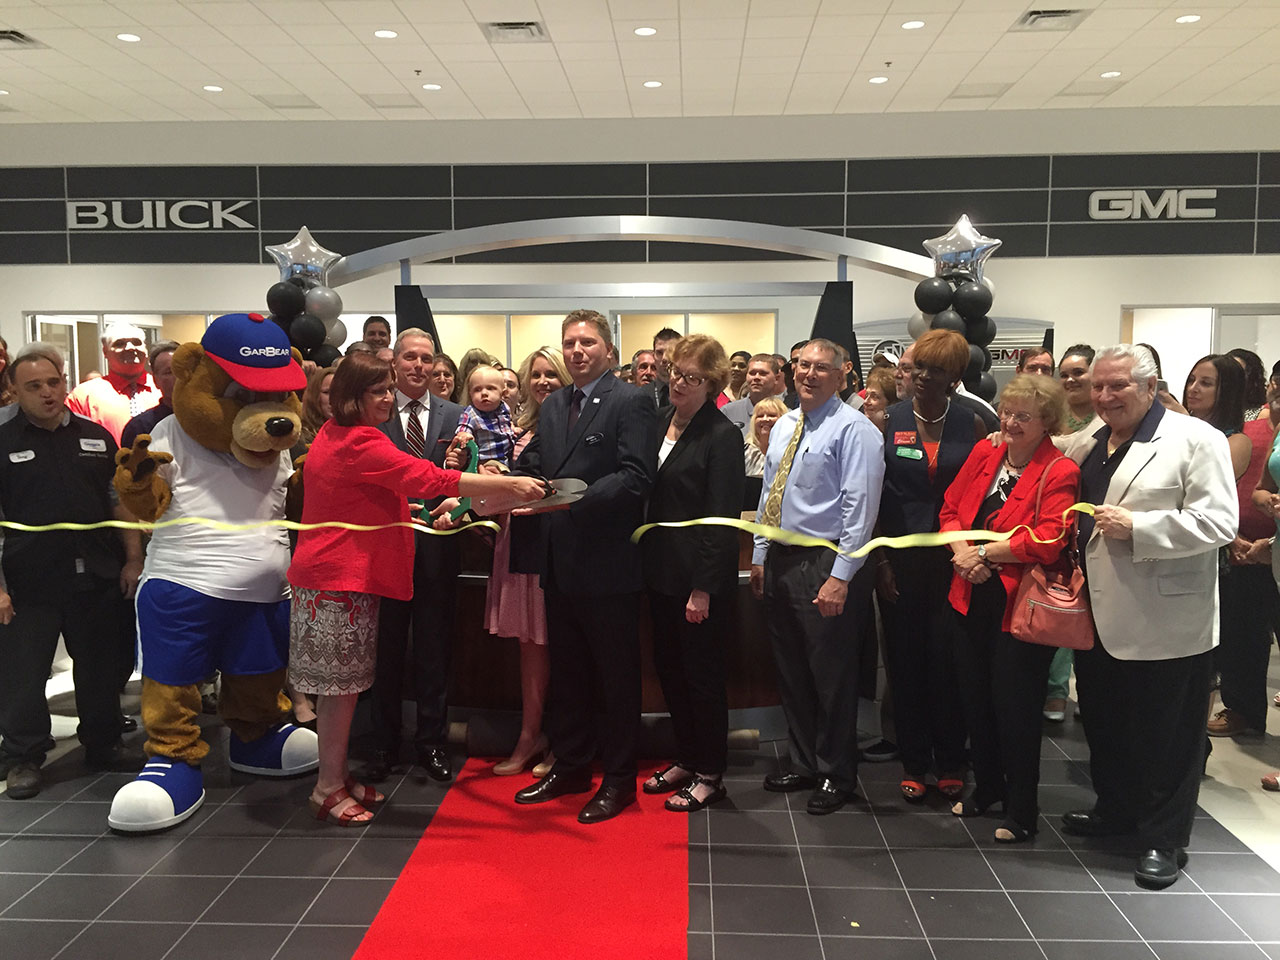 Richard J. Garber Jr. and General Manager Michael Weinert cut the ribbon for the new dealership.